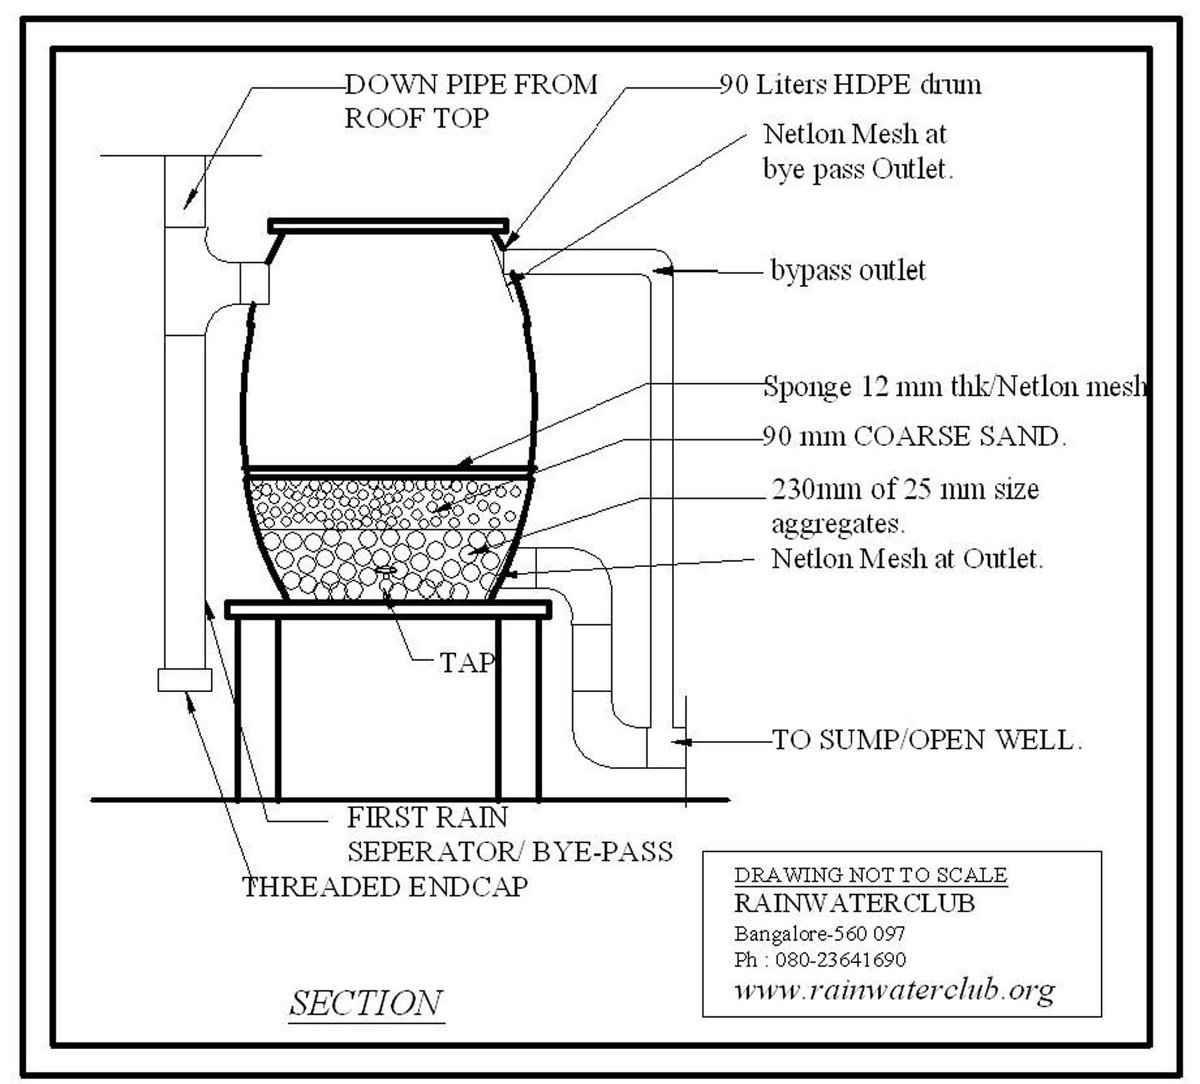 A doityourself rainwater filter to clean rooftop rainwater before storage in a sump. #water <br>http://pic.twitter.com/UEdCVEVPsb